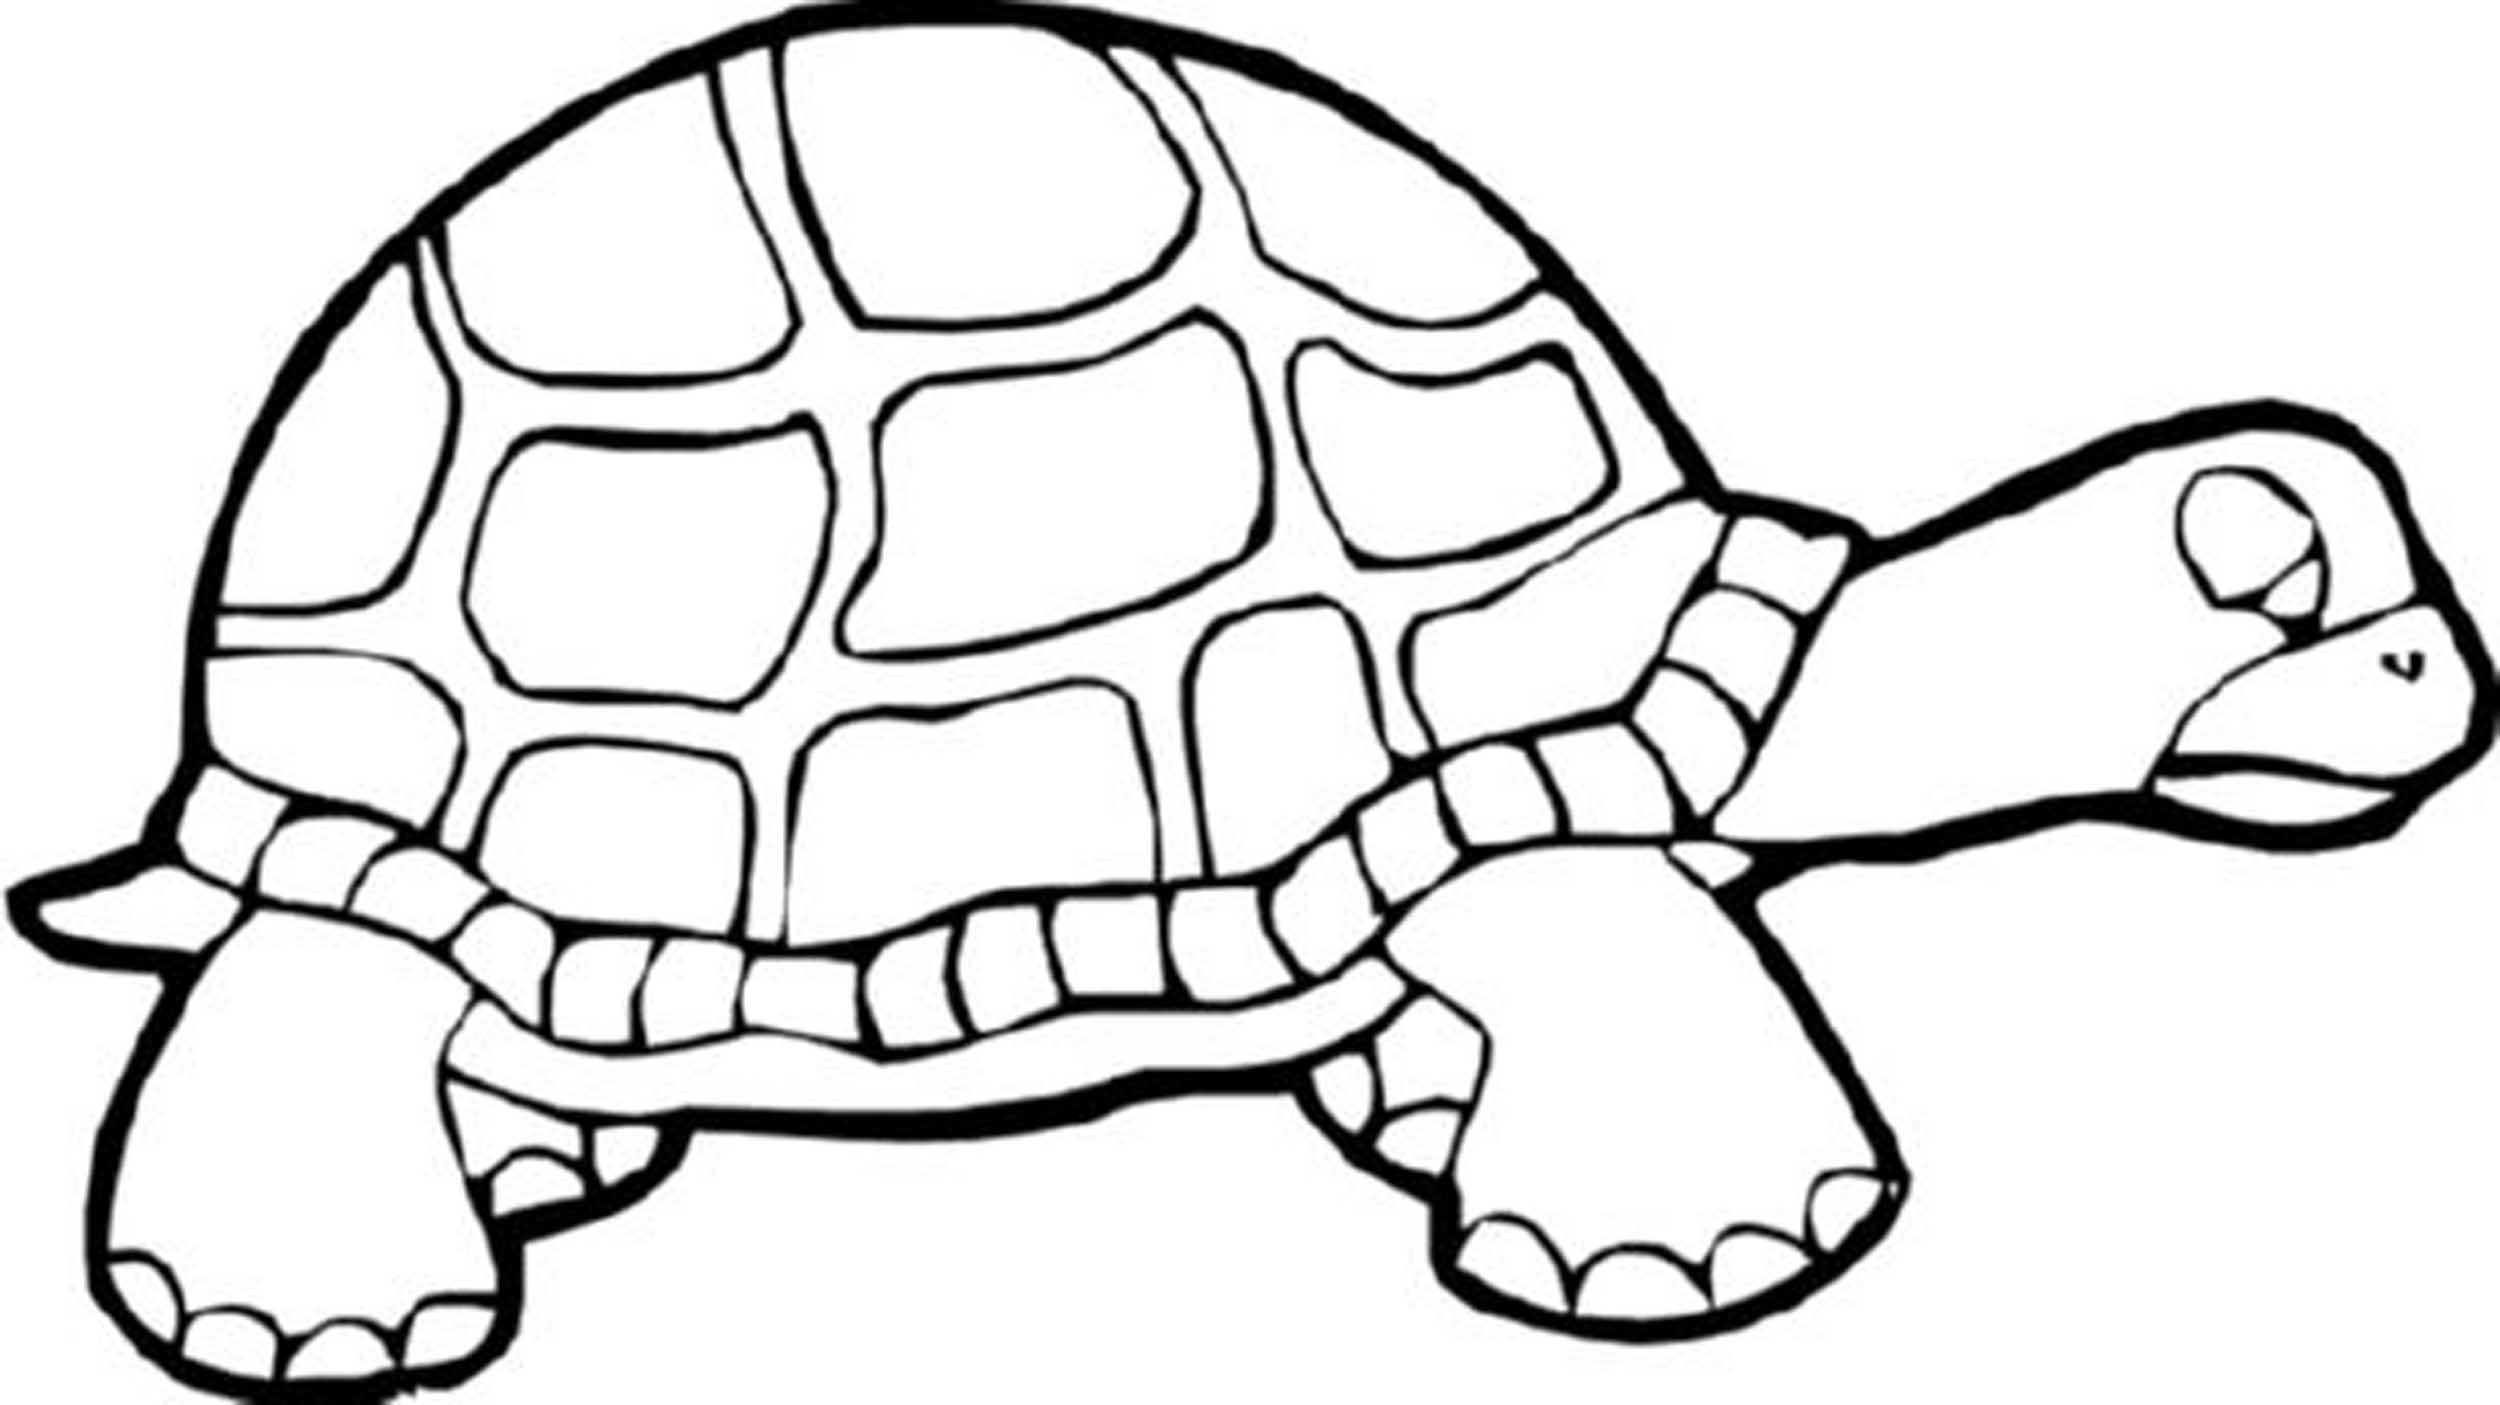 coloring picture turtle coloring pages turtles free printable coloring pages turtle picture coloring